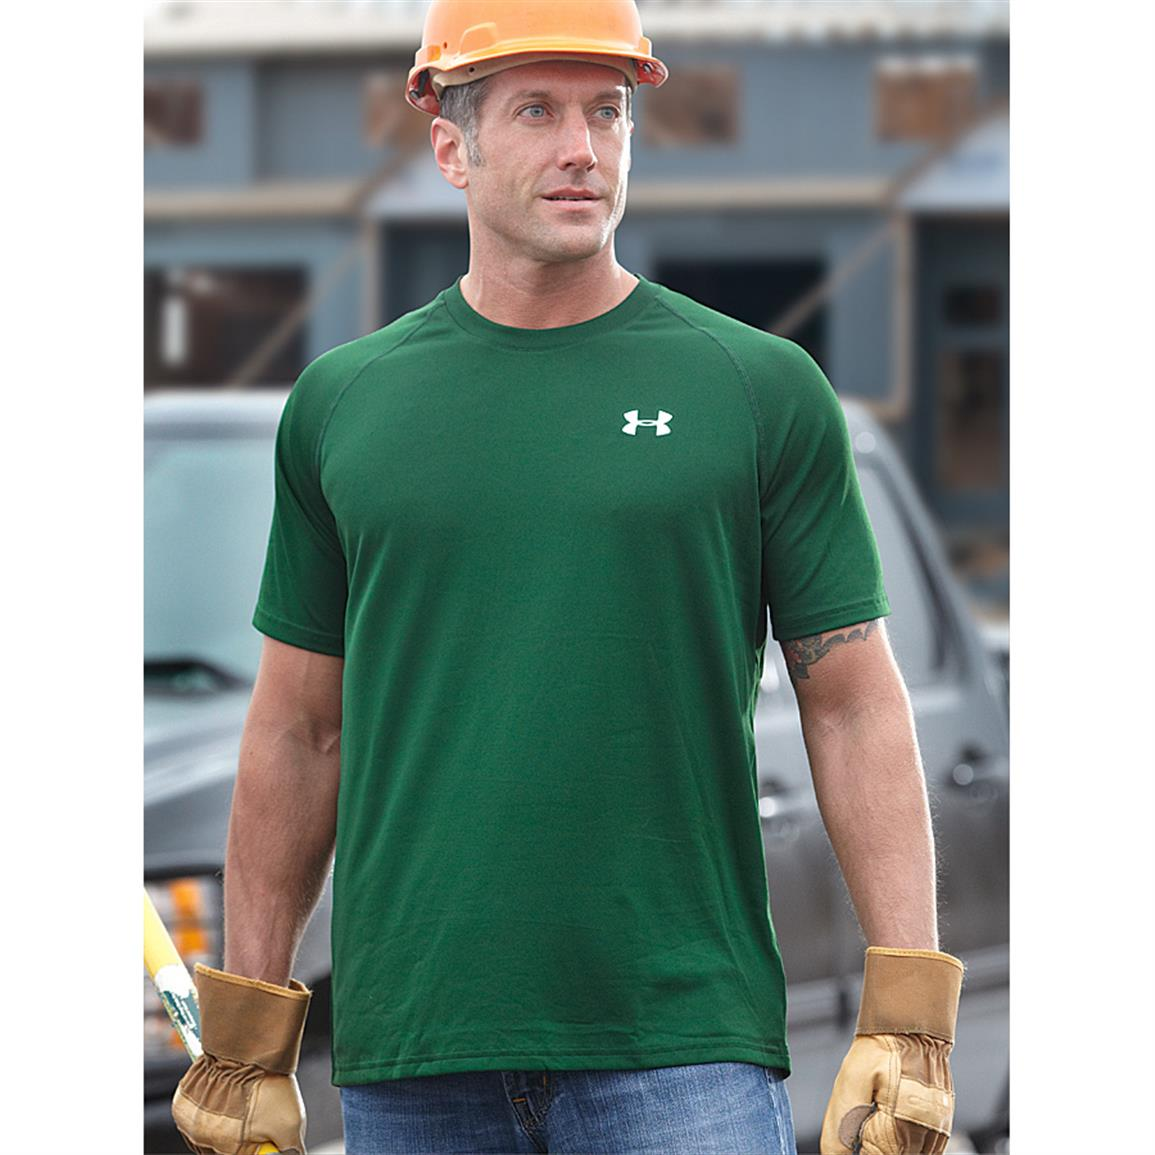 Under Armour Men's Tech Short-sleeved T-Shirt, Forest Green